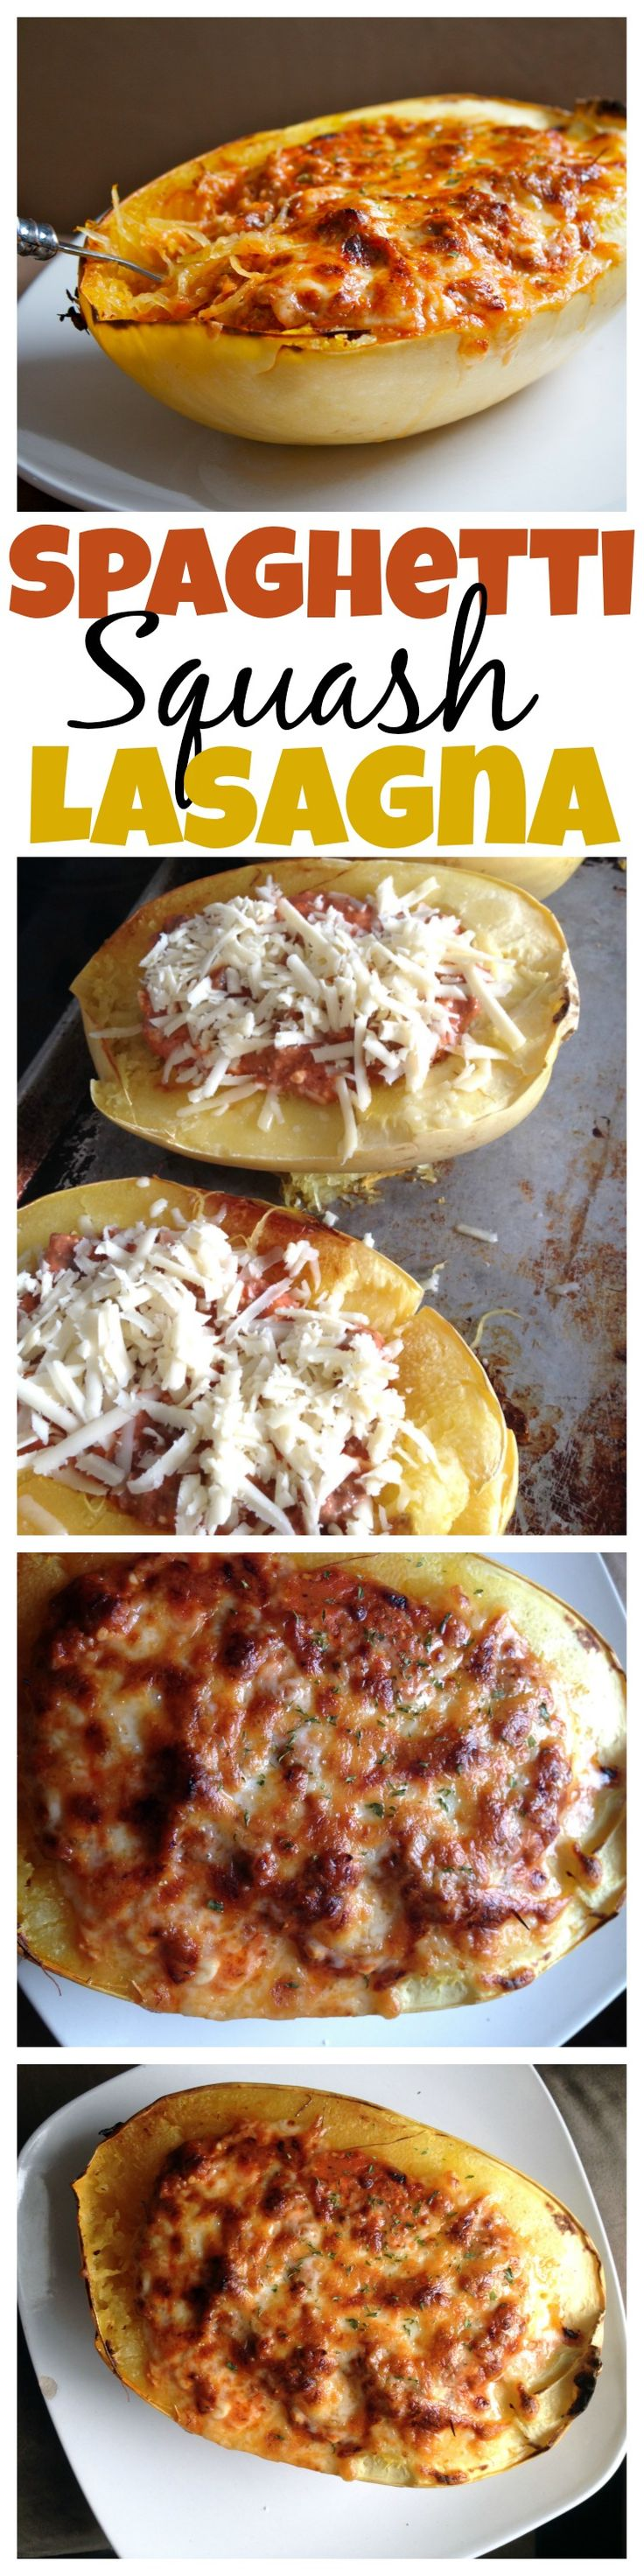 A low carb option to a classic favorite! This spaghetti squash lasagna is amazing, easy to make, and tastes fantastic! - Eazy Peazy Mealz